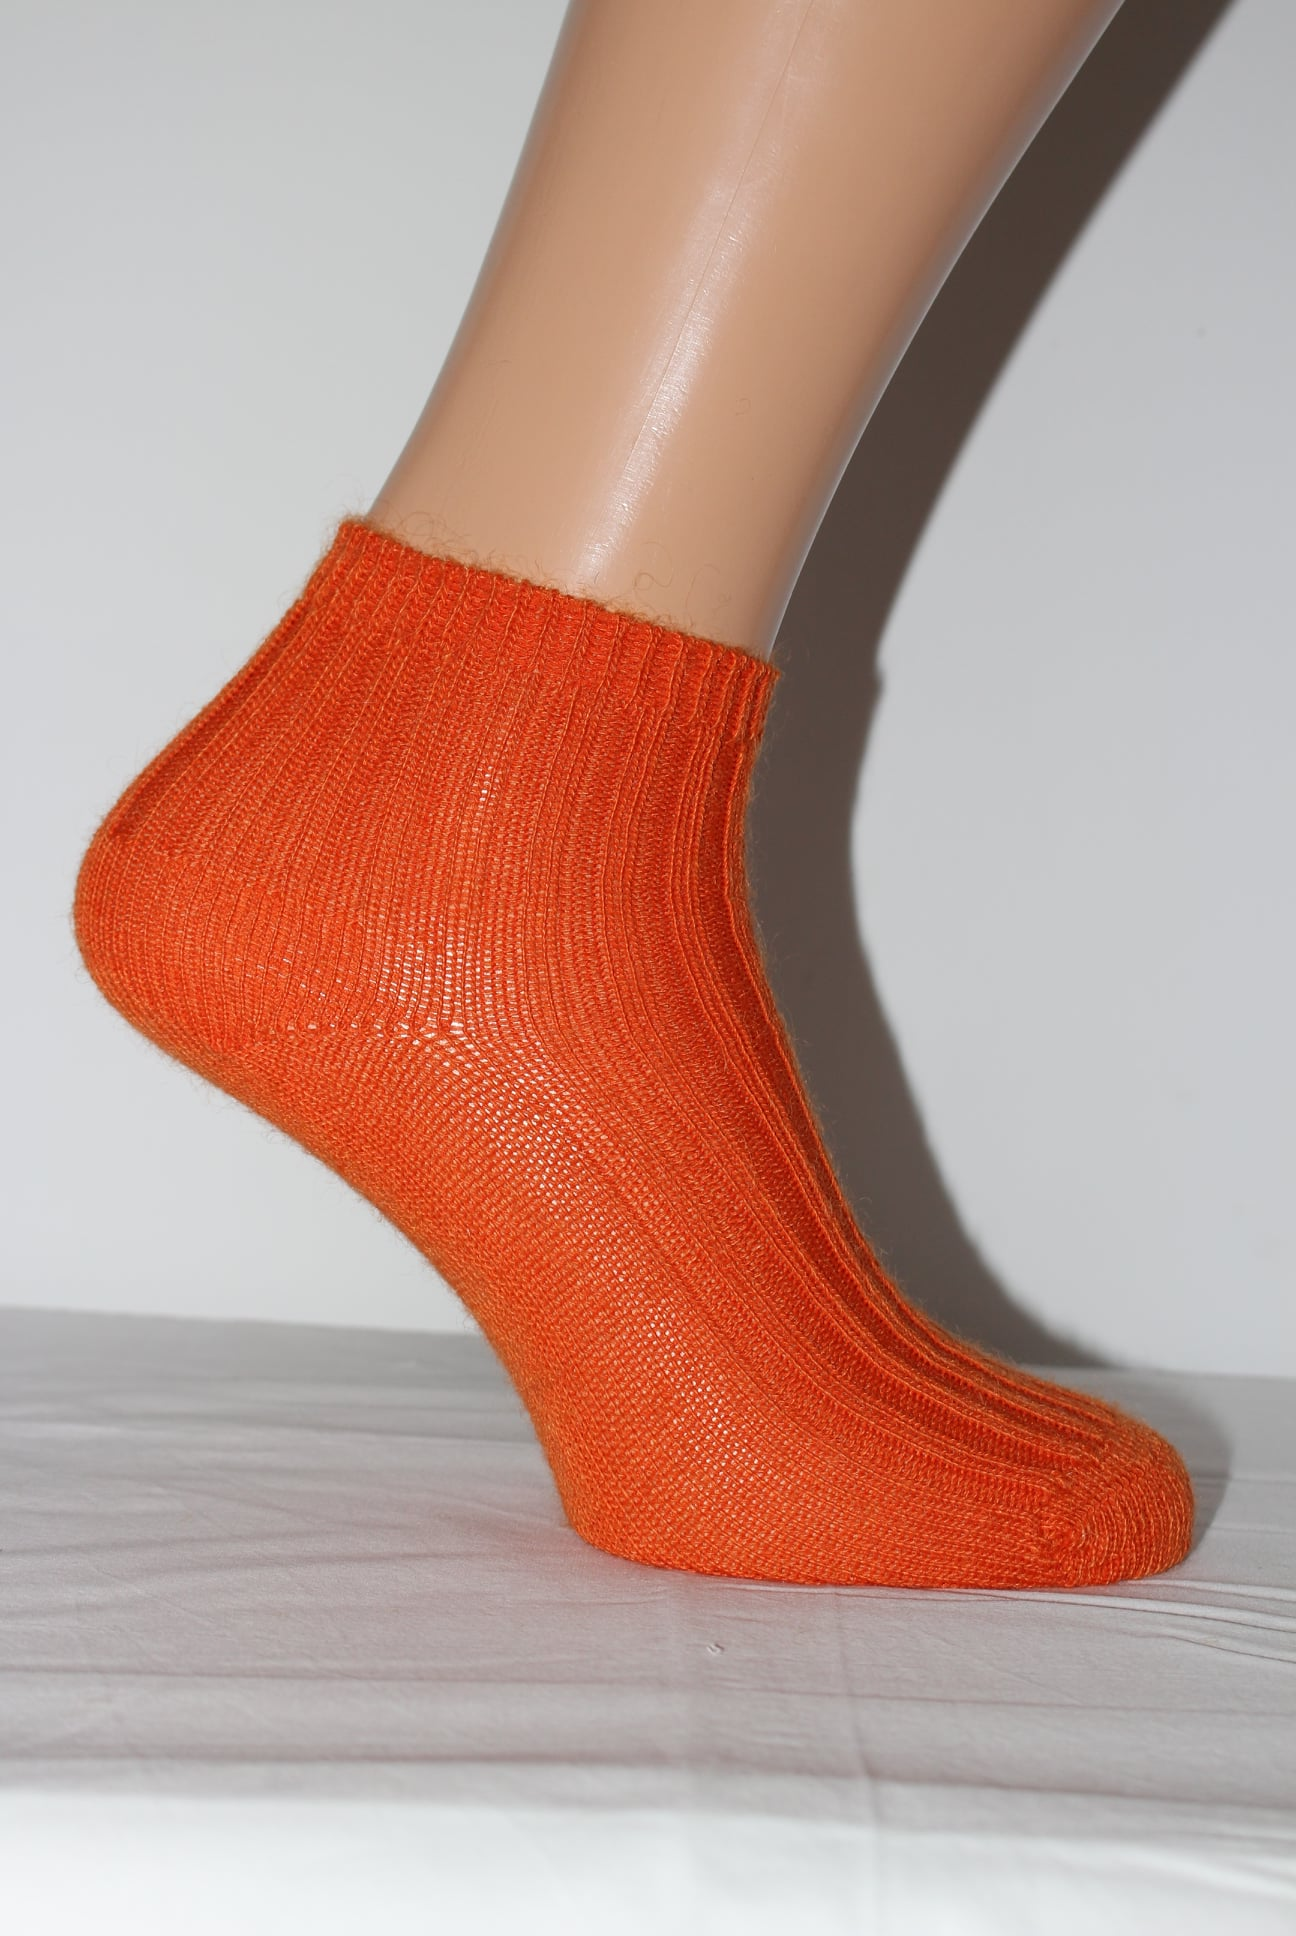 Anklet - Orange - socks